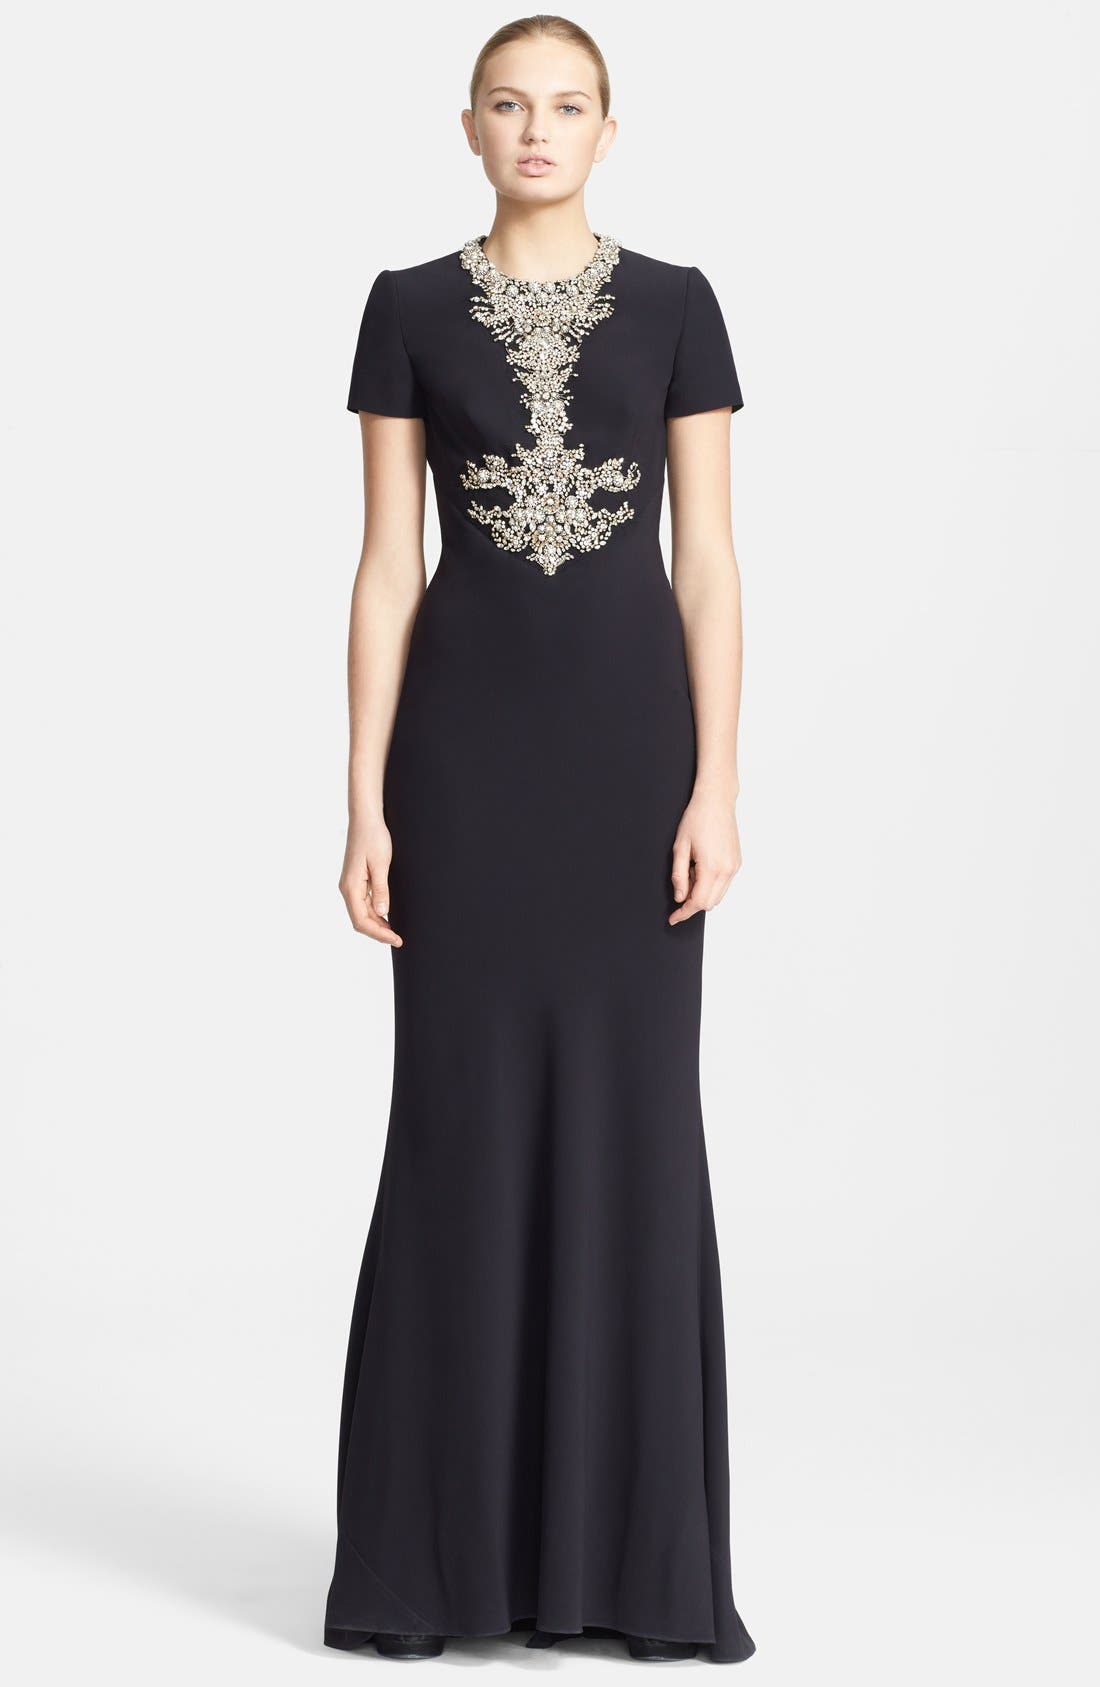 Main Image - Alexander McQueen Embellished Crepe Gown